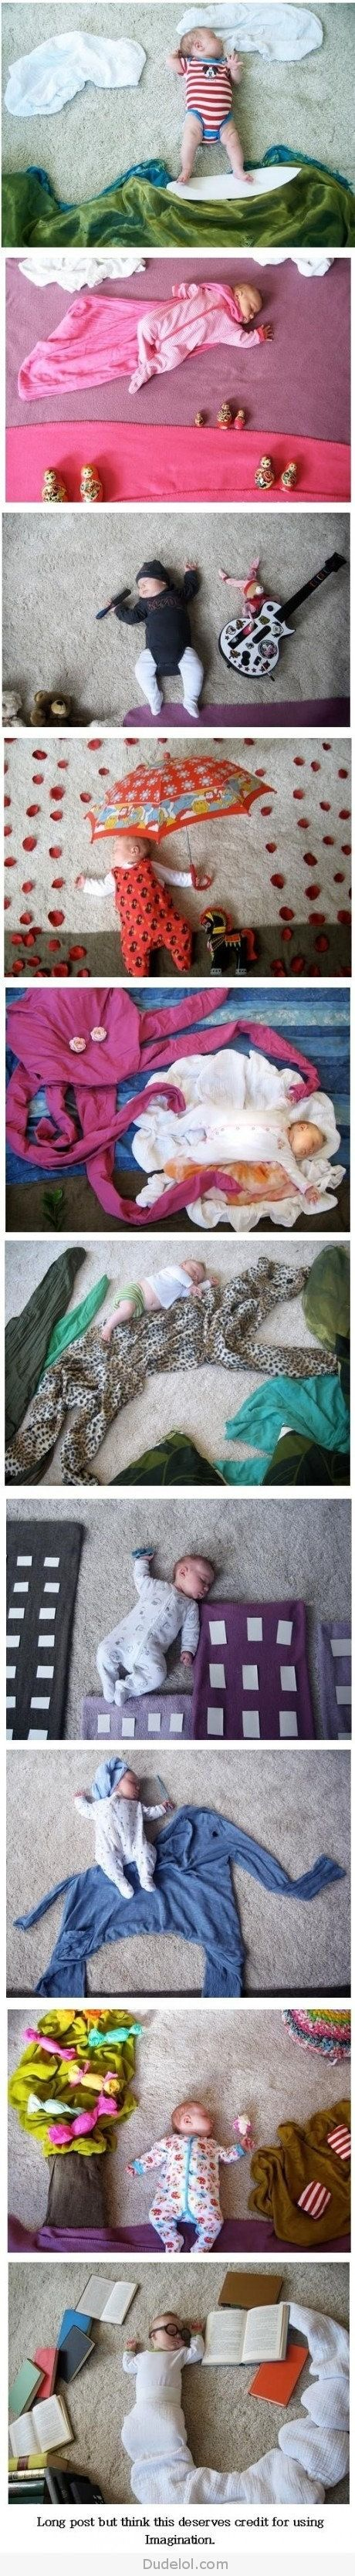 Awesome baby photos